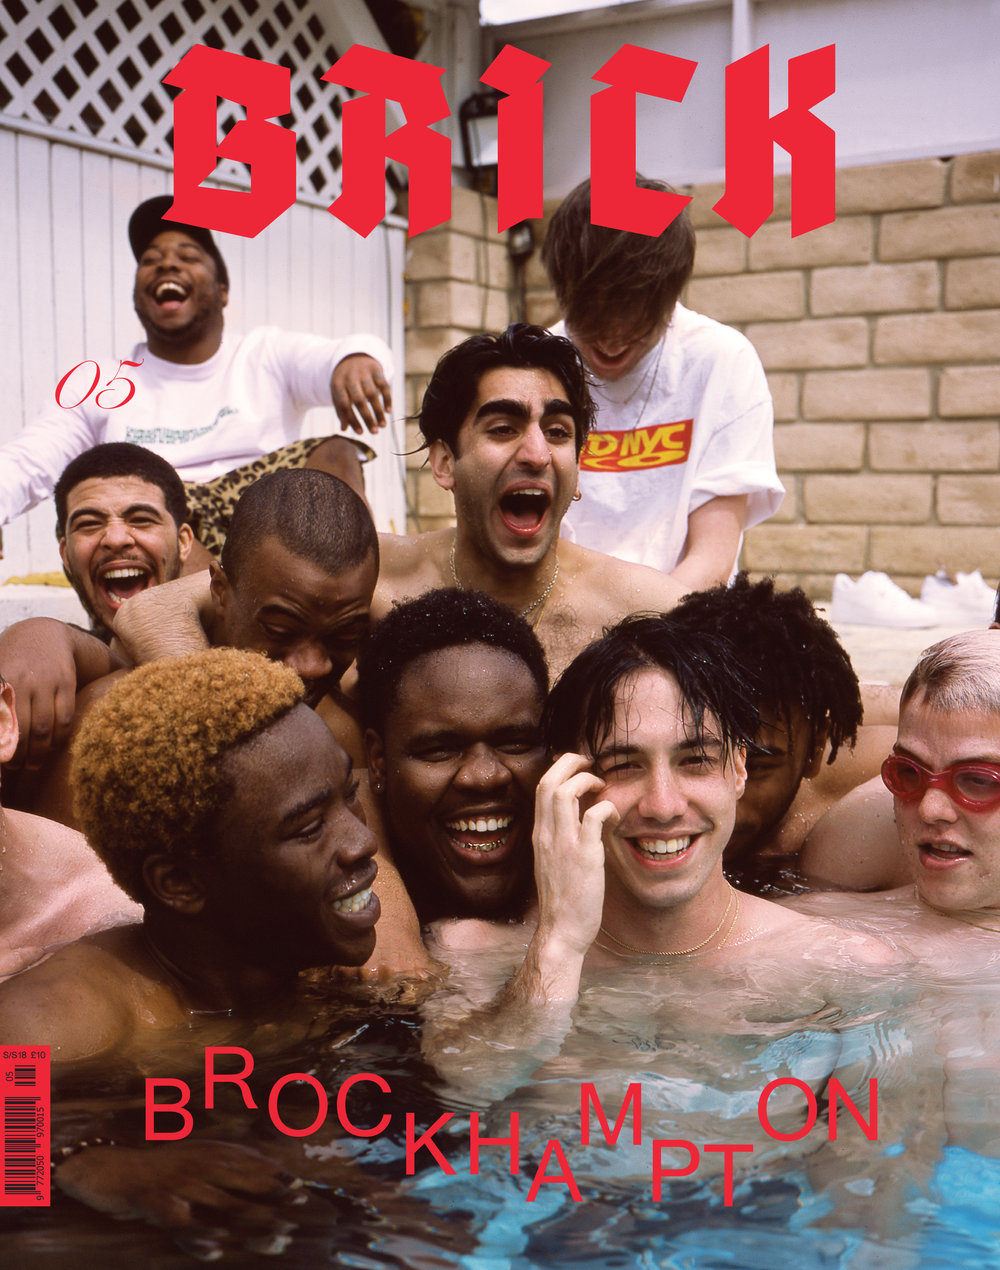 Brockhampton - 2018, Brick Magazine Cover Story